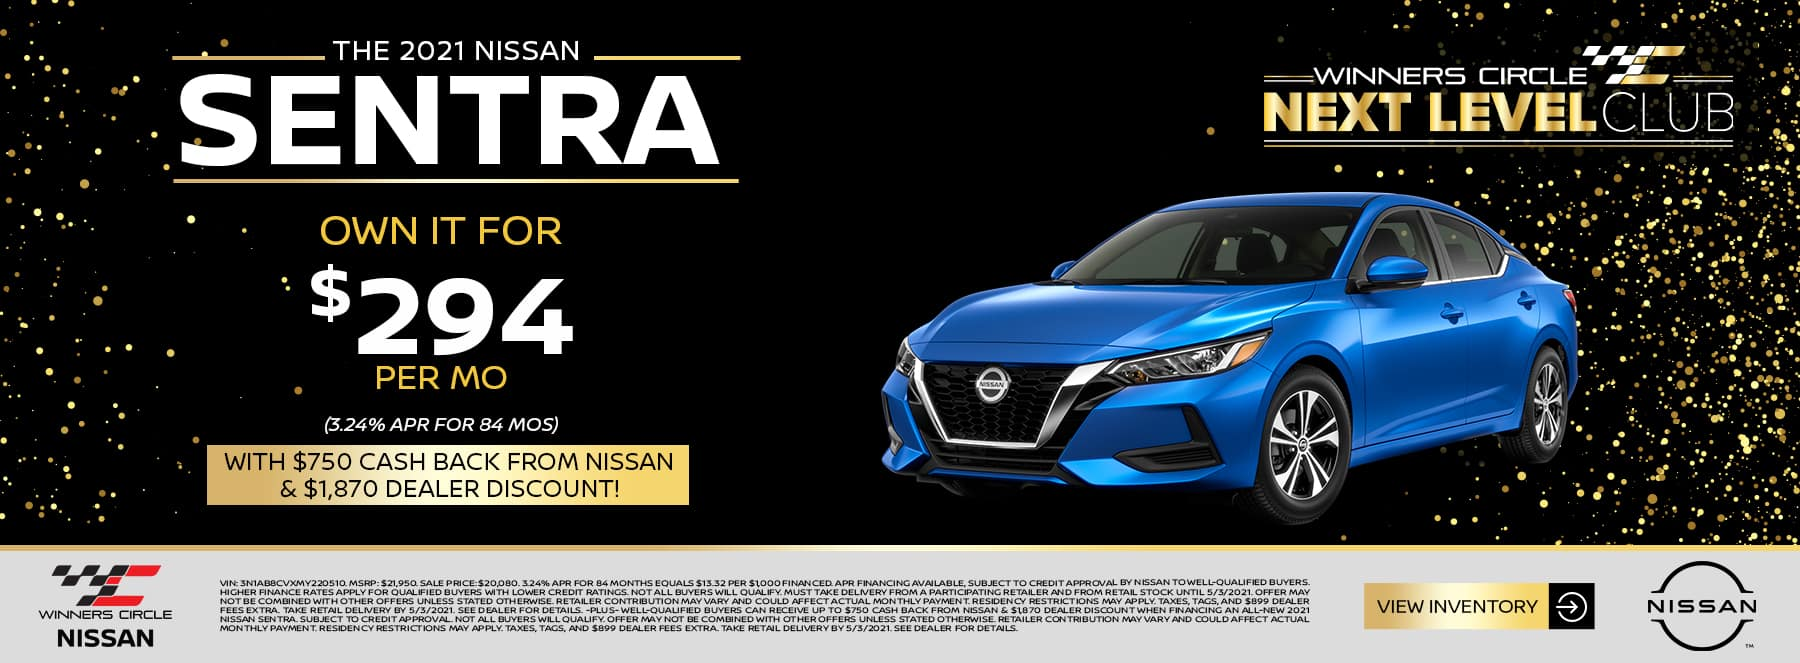 2021 Nissan Sentra - Own it for $294 per month (3.24% APR for 84 months) with $750 cash back from Nissan & $1,870 dealer discount!